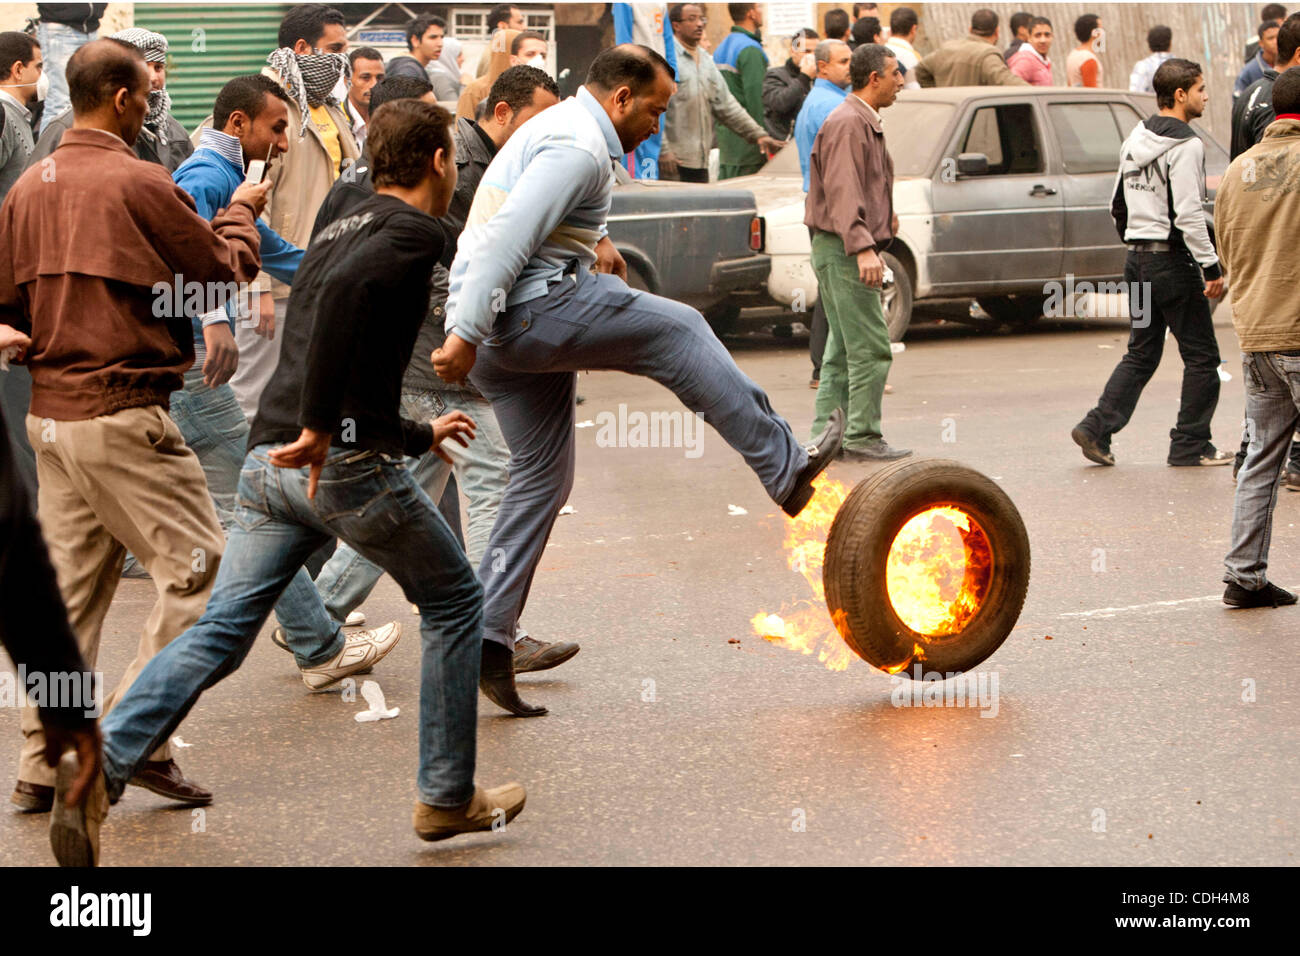 Jan 28, 2011 - Cairo, Egypt - A man kicks a burning tire. Egyptians demonstrated under the 6th October Bridge at - Stock Image